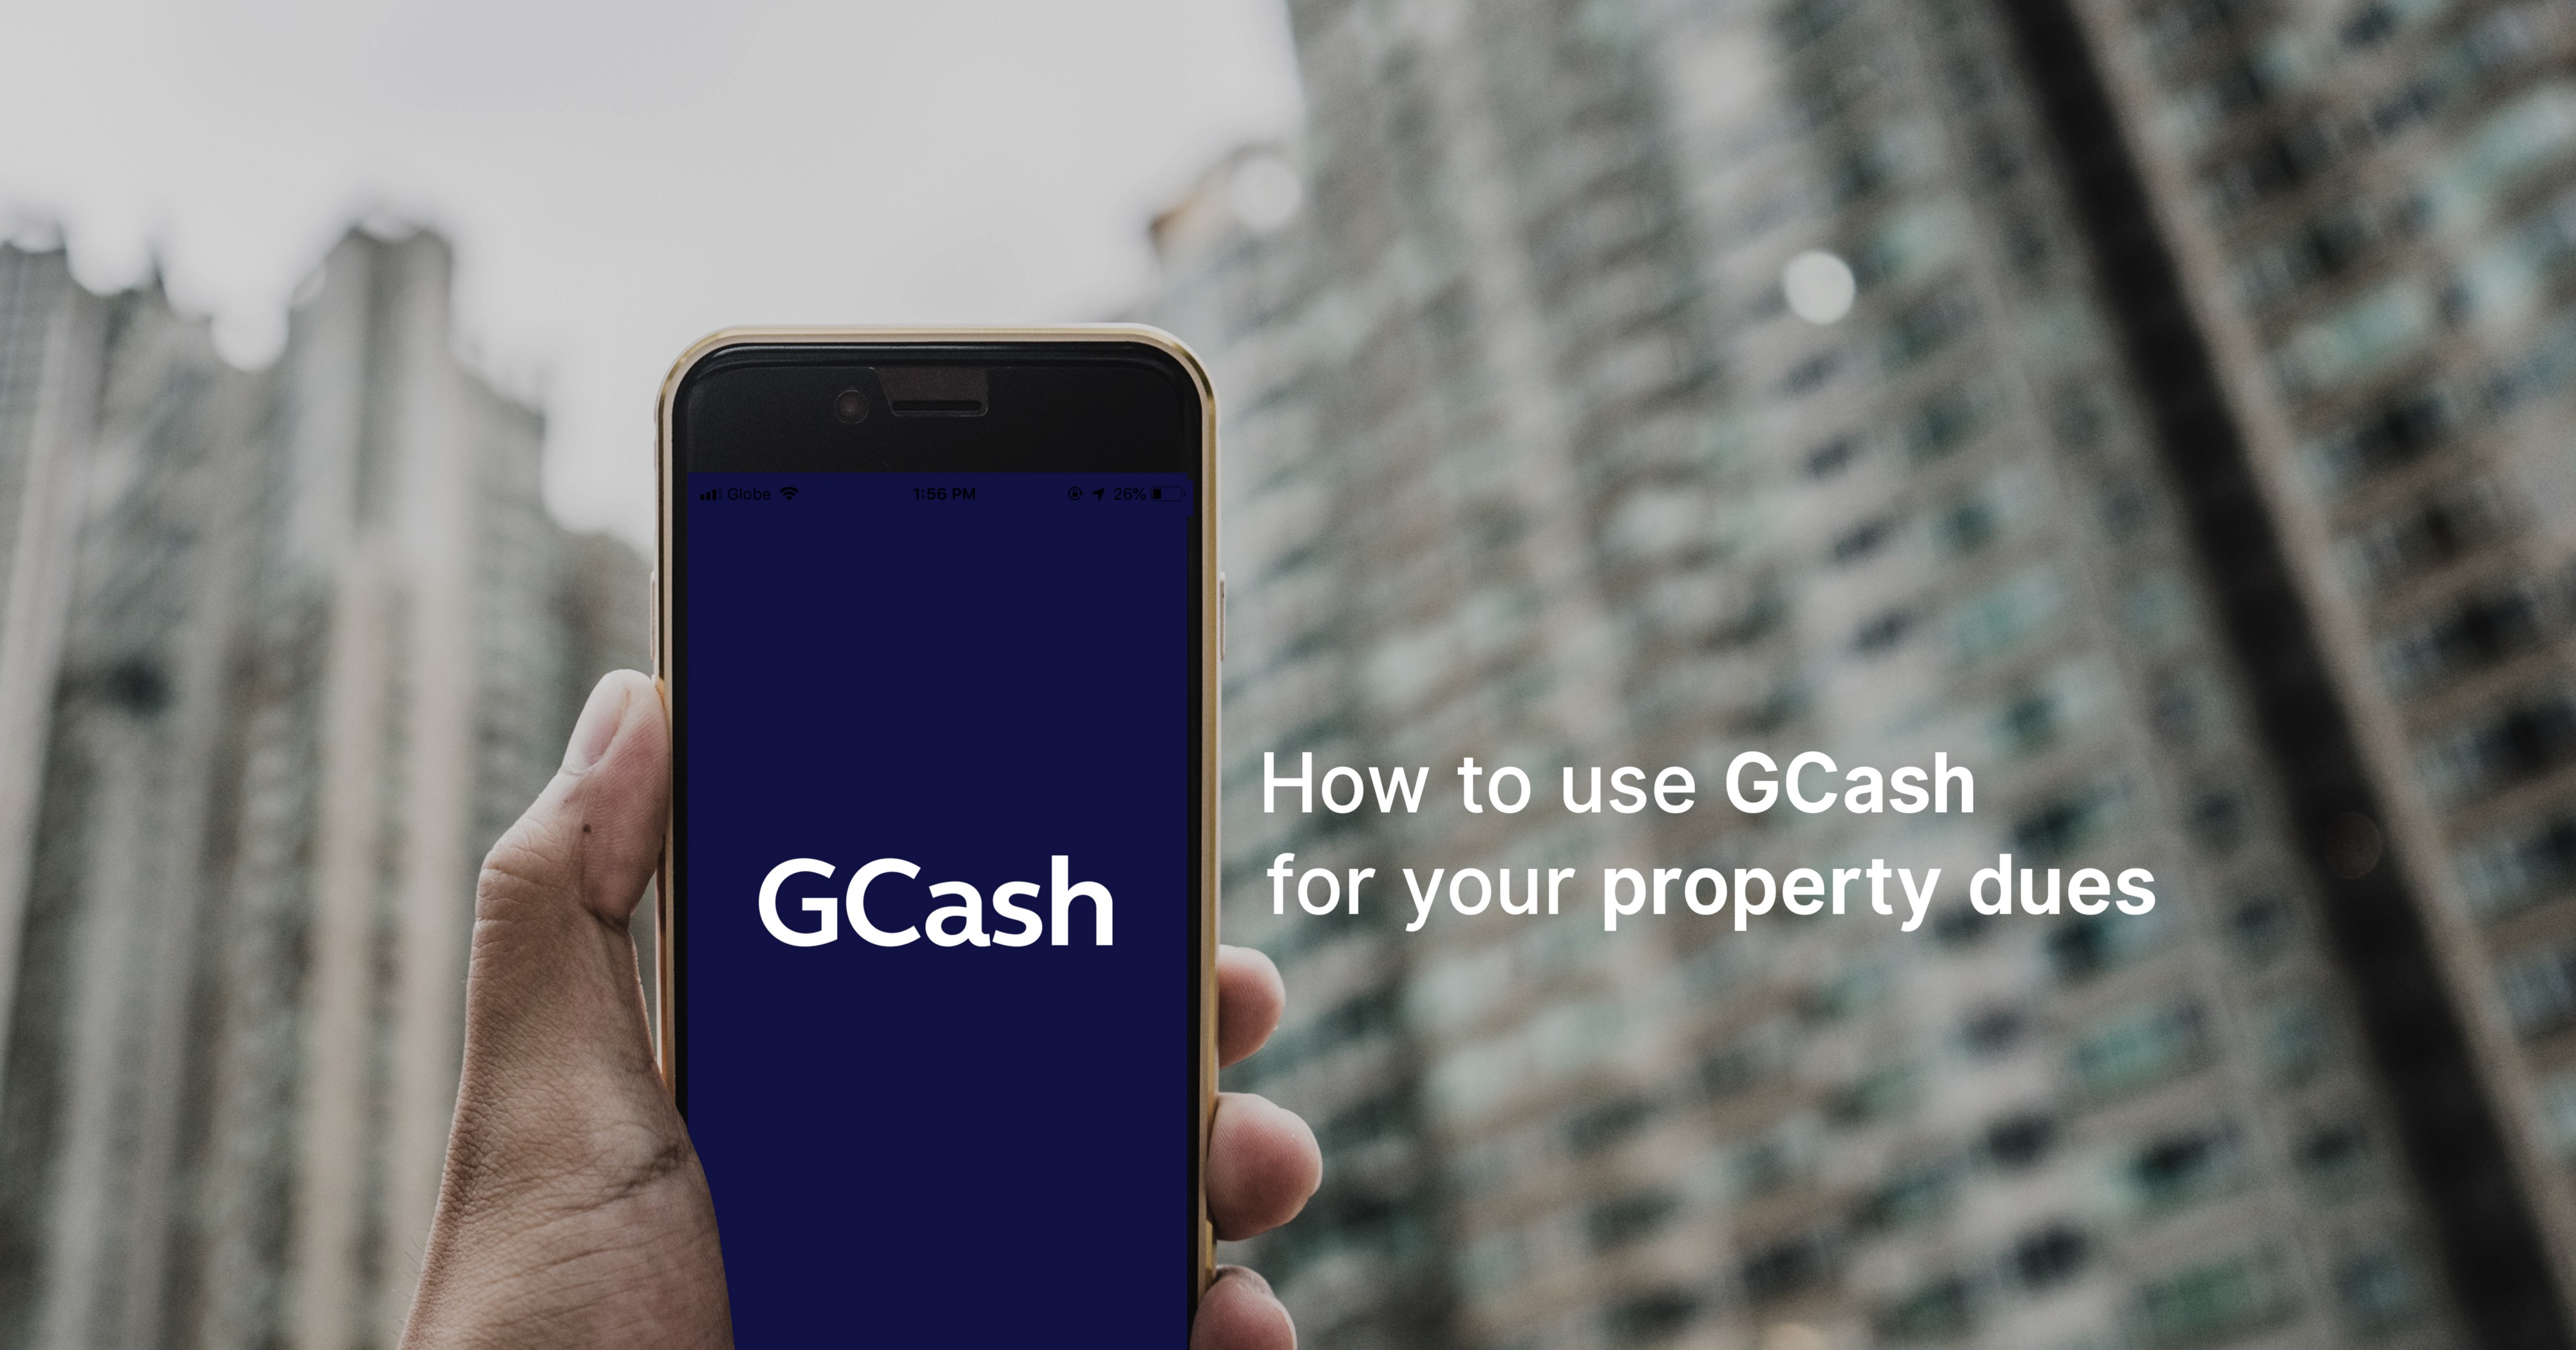 How To Use GCash for your Property Dues? - The Official